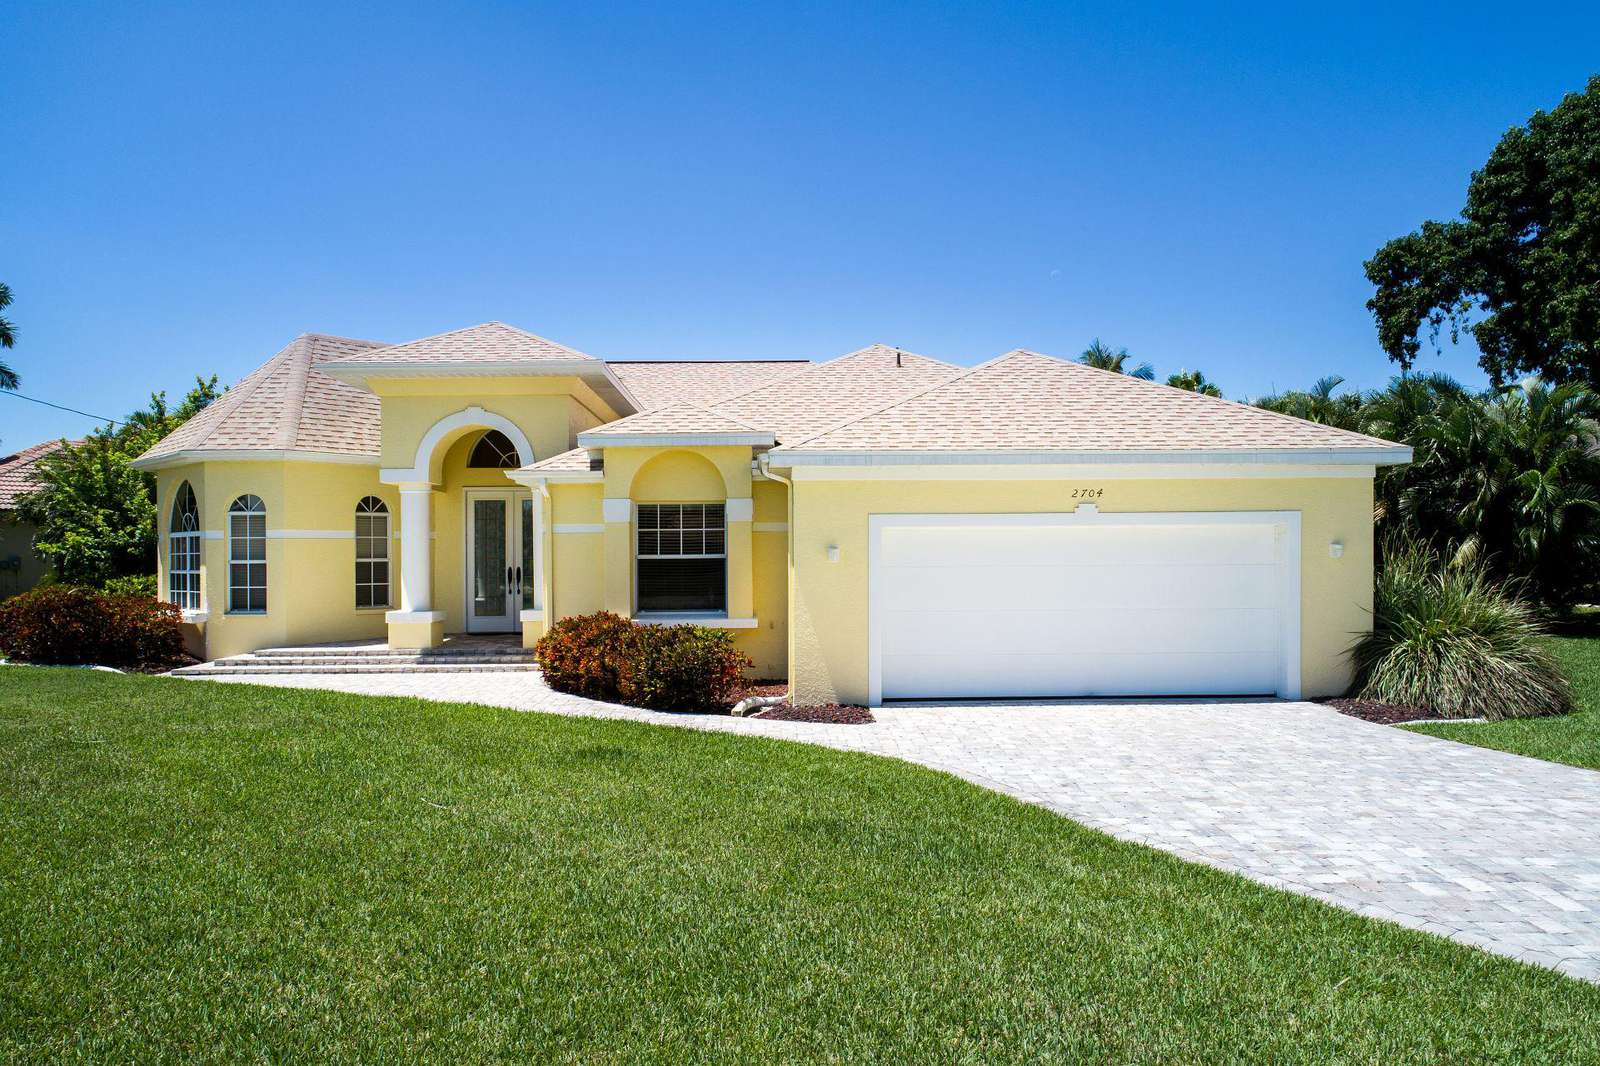 Wischis Florida Home - Treasure Island Vacation Rental Cape Coral - Property Management - Real Estate